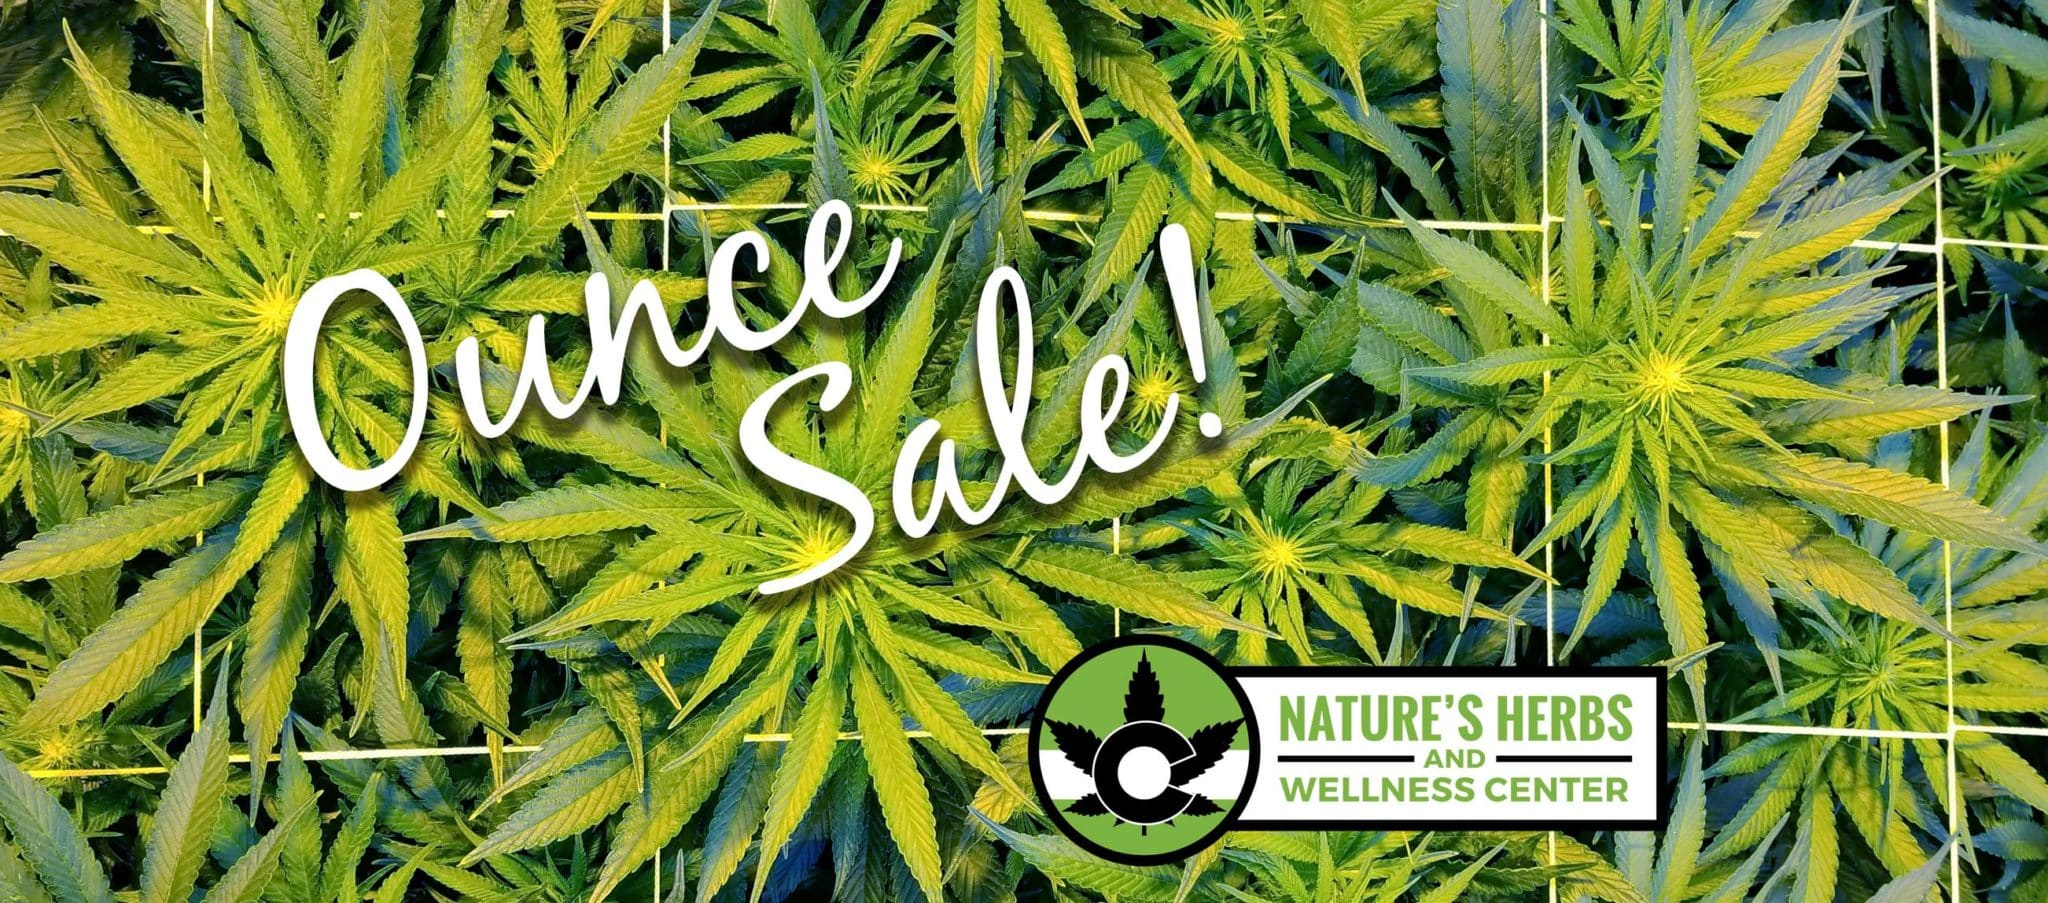 Nature's Herbs Pre-Weighed Ounce Sale